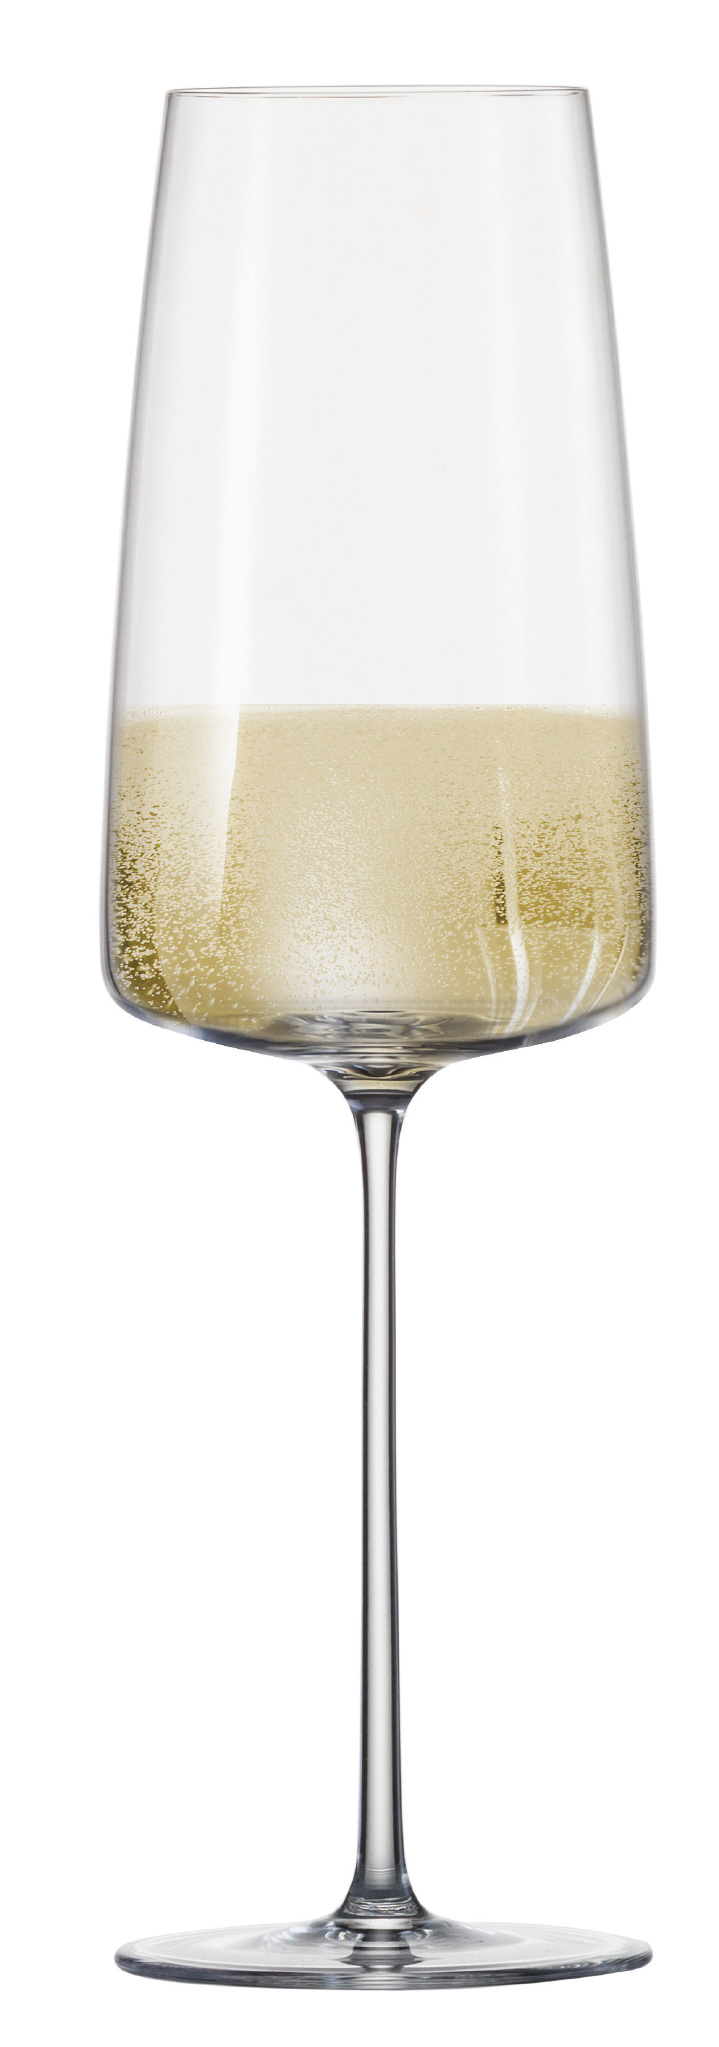 Zwiesel 1872 Champagneglas Simplify Light & Fresh 41 cl